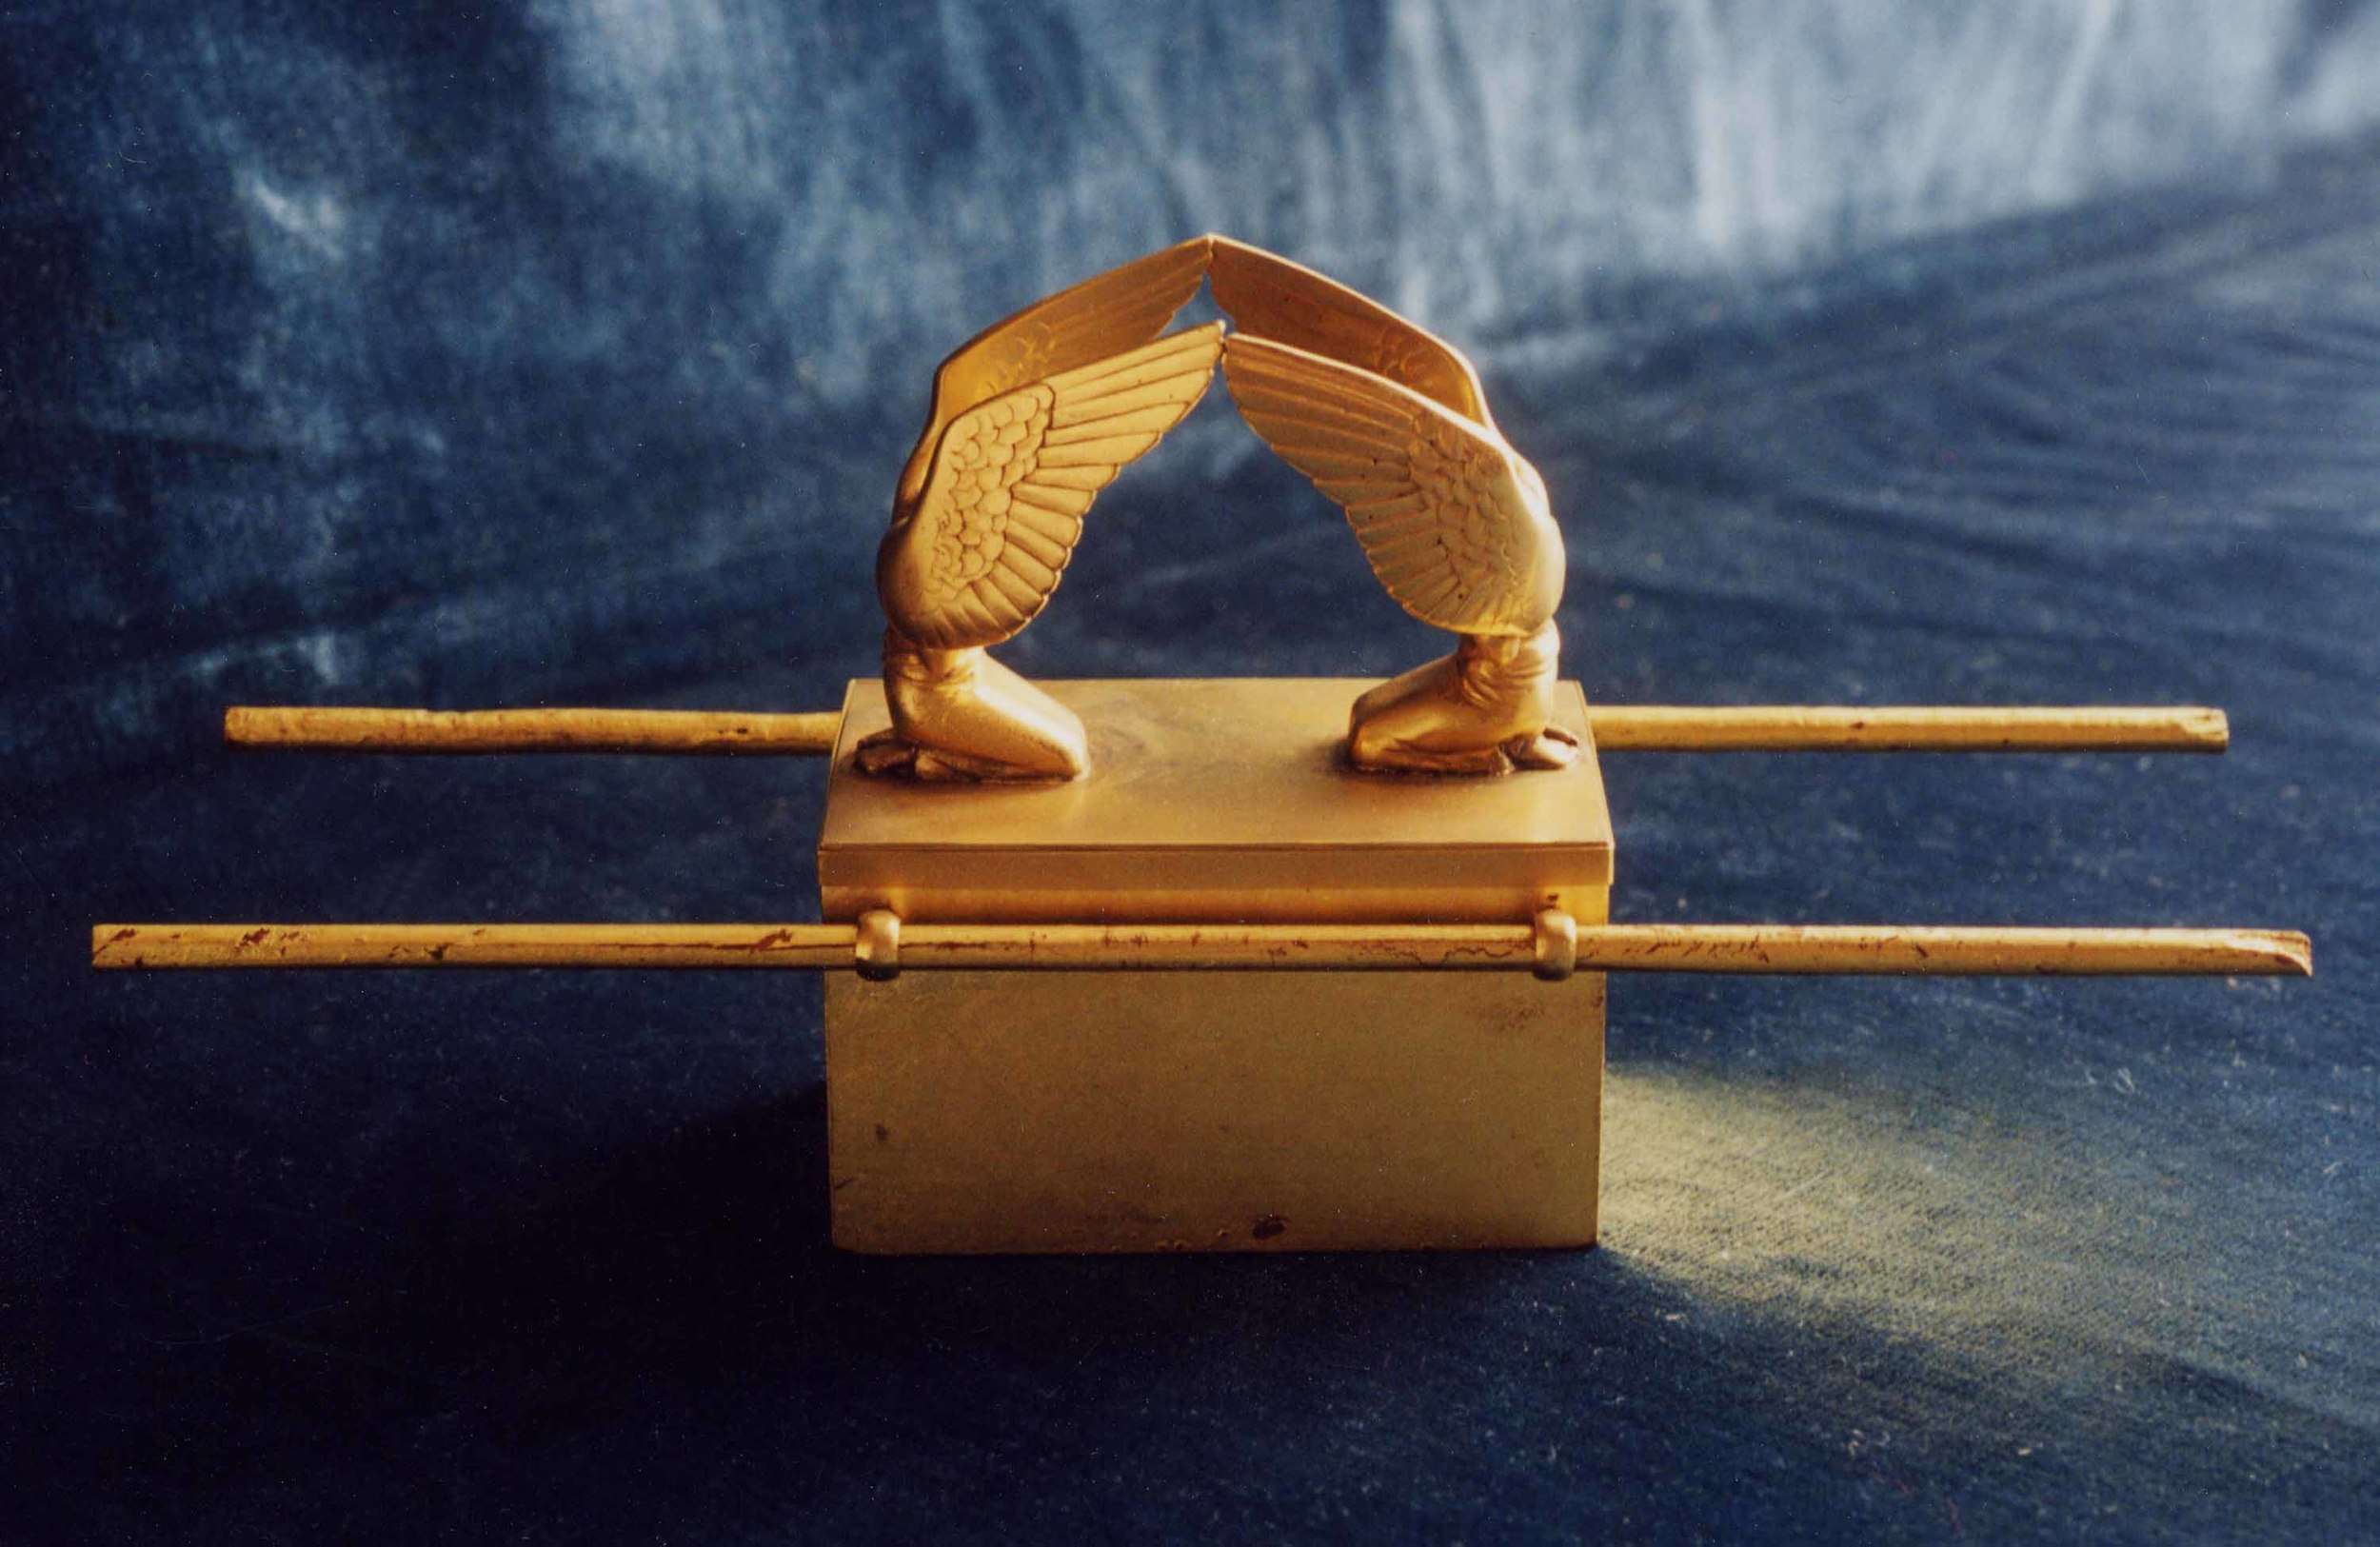 Scale model of the Ark of the Covenant in the Ancient Near East gallery.